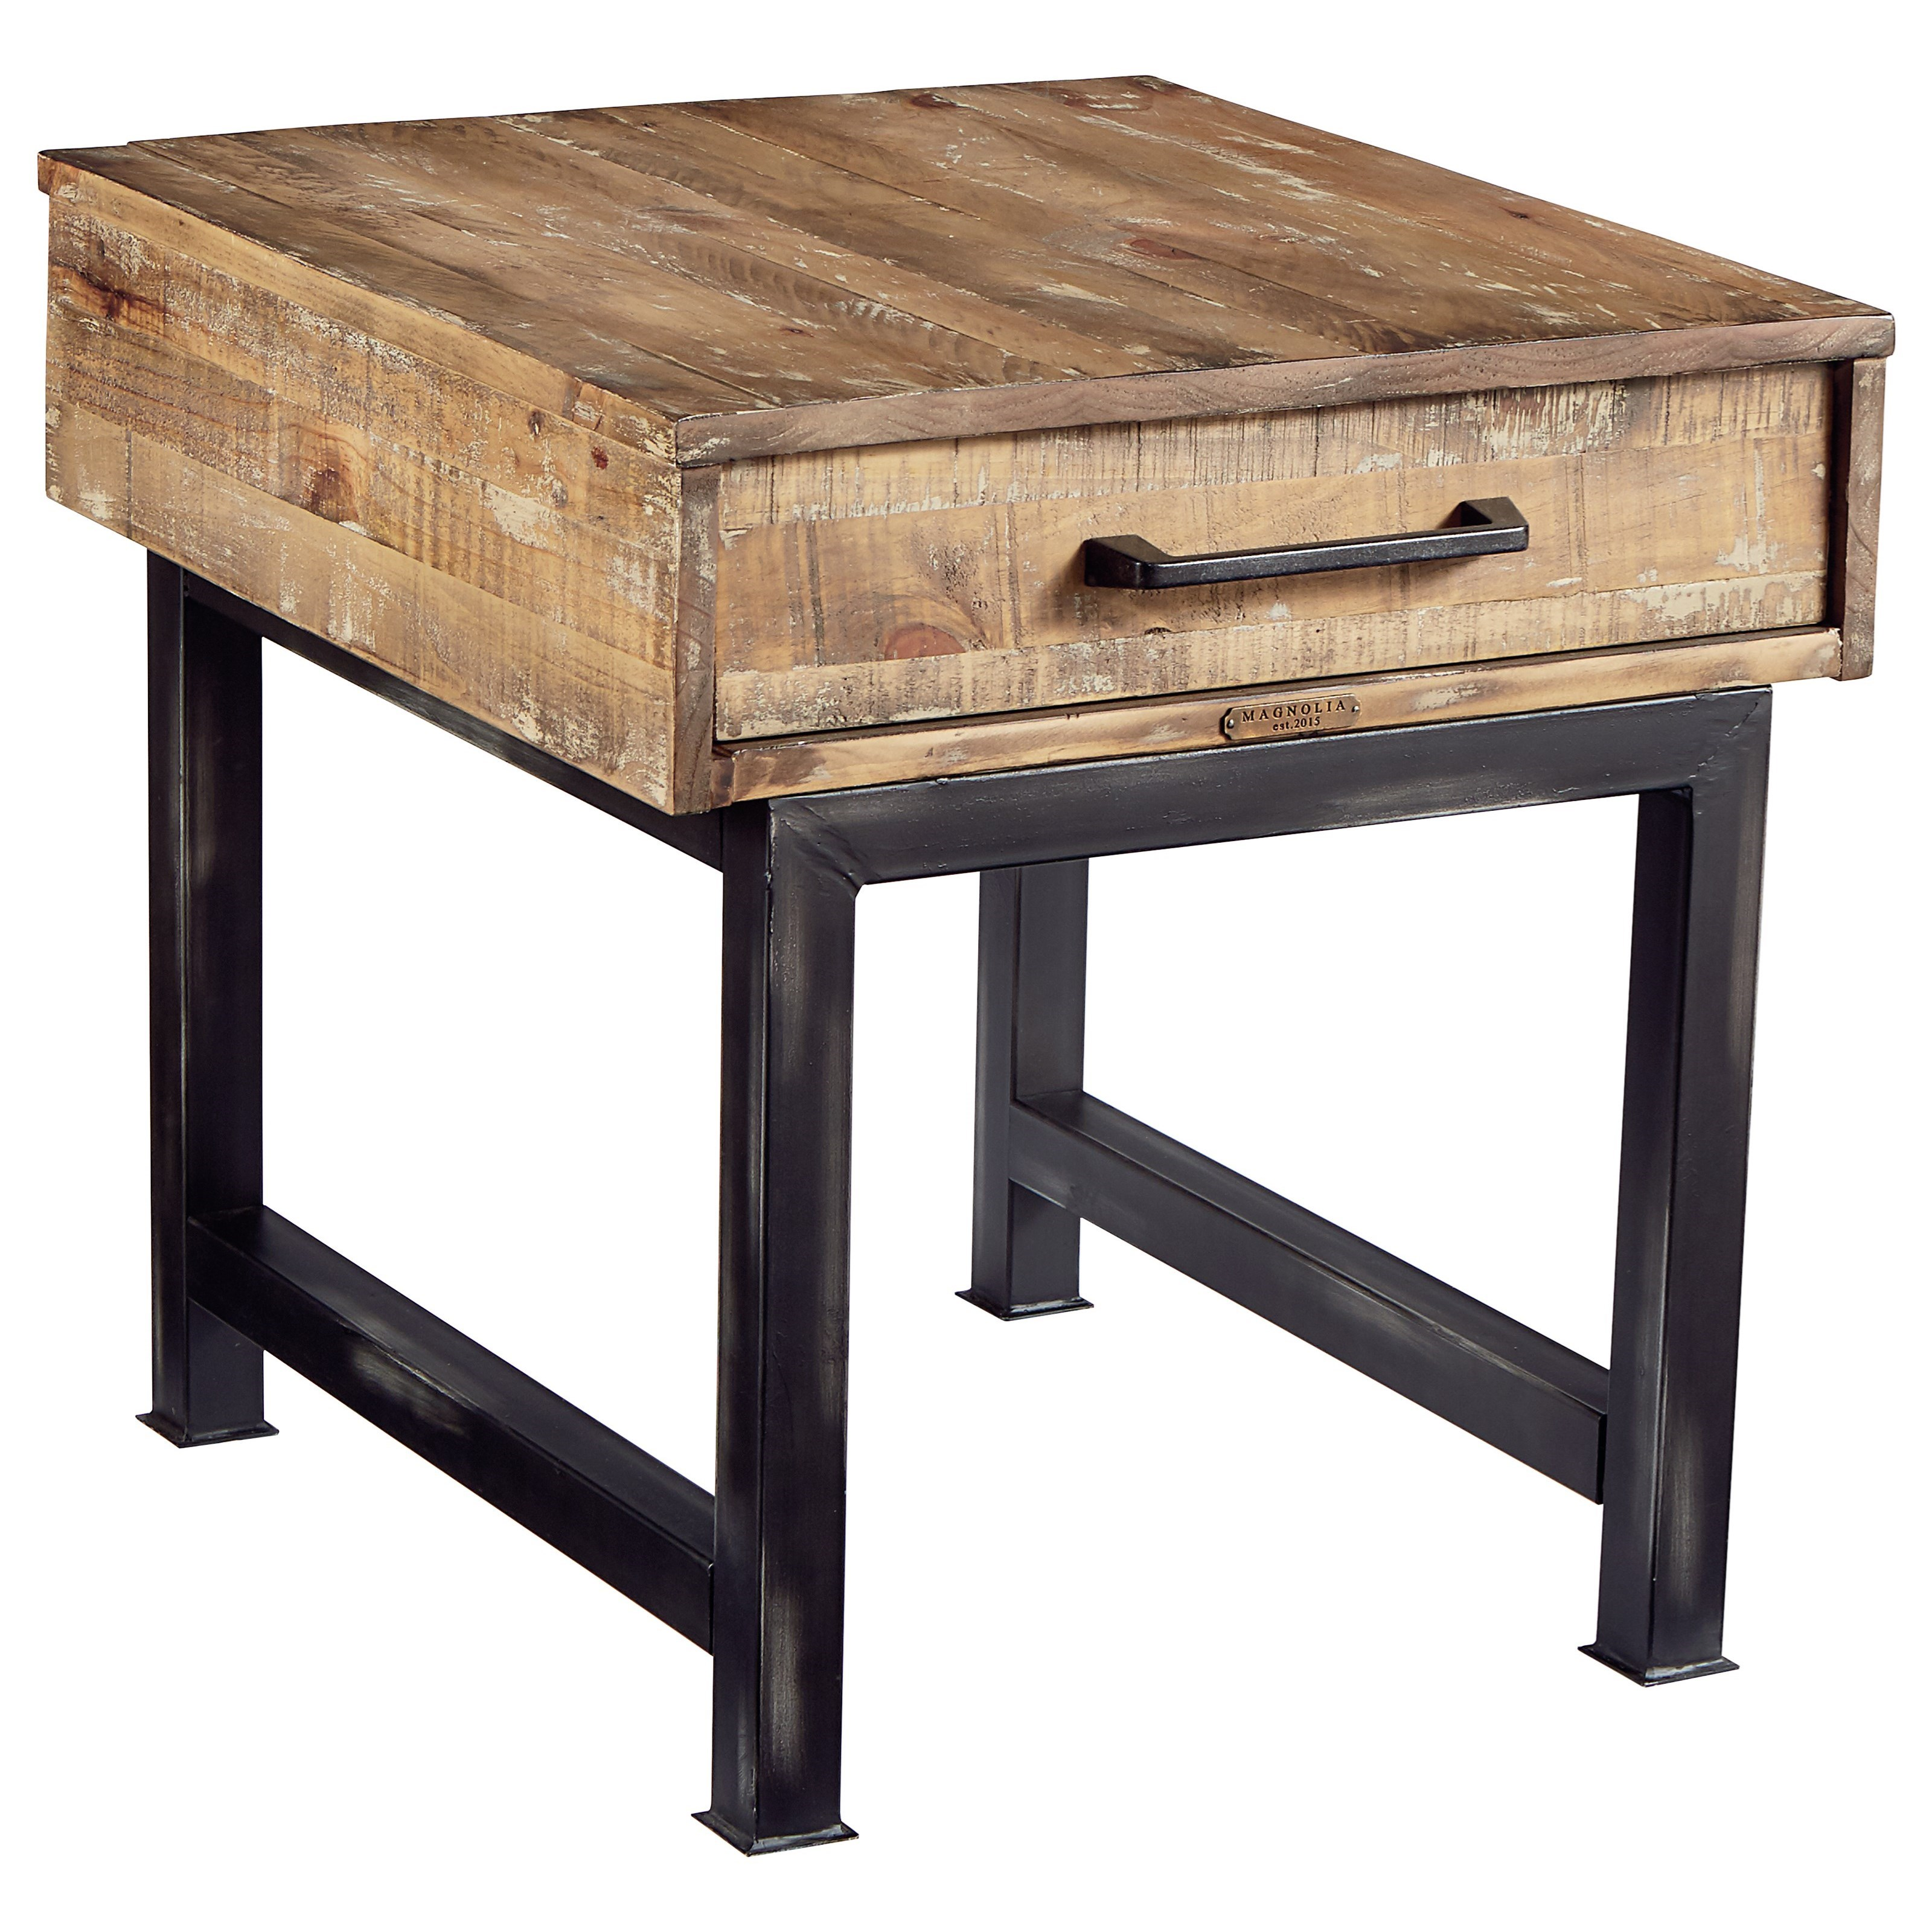 kitchen tables art van disposal magnolia home by joanna gaines industrial pier and beam